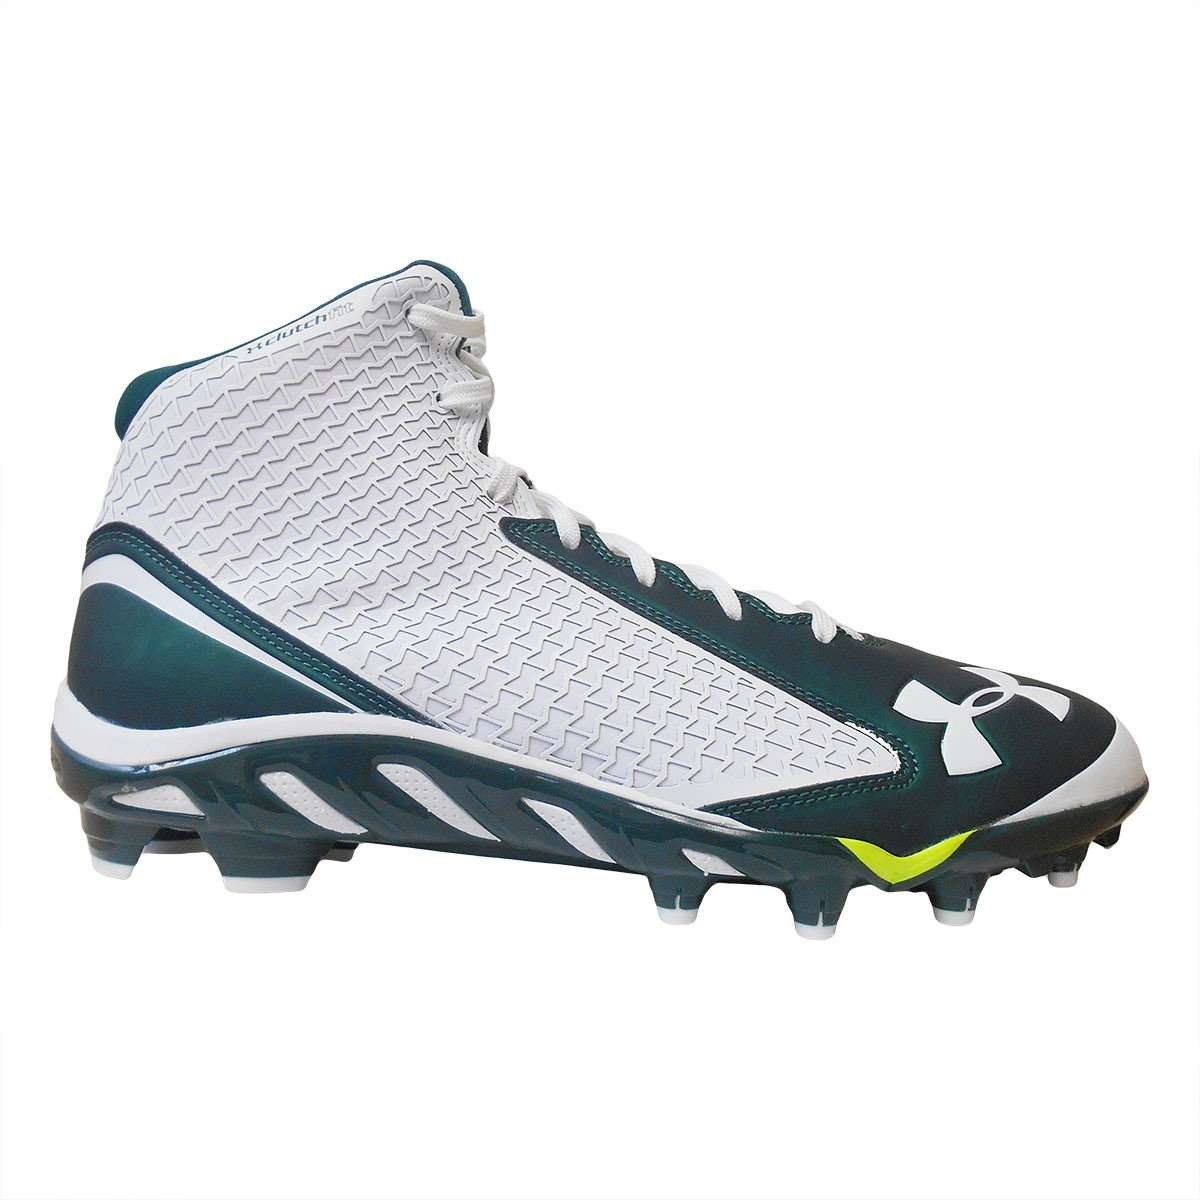 under armour football cleats. under armour team spine nitro mid mc football cleats - league outfitters 3